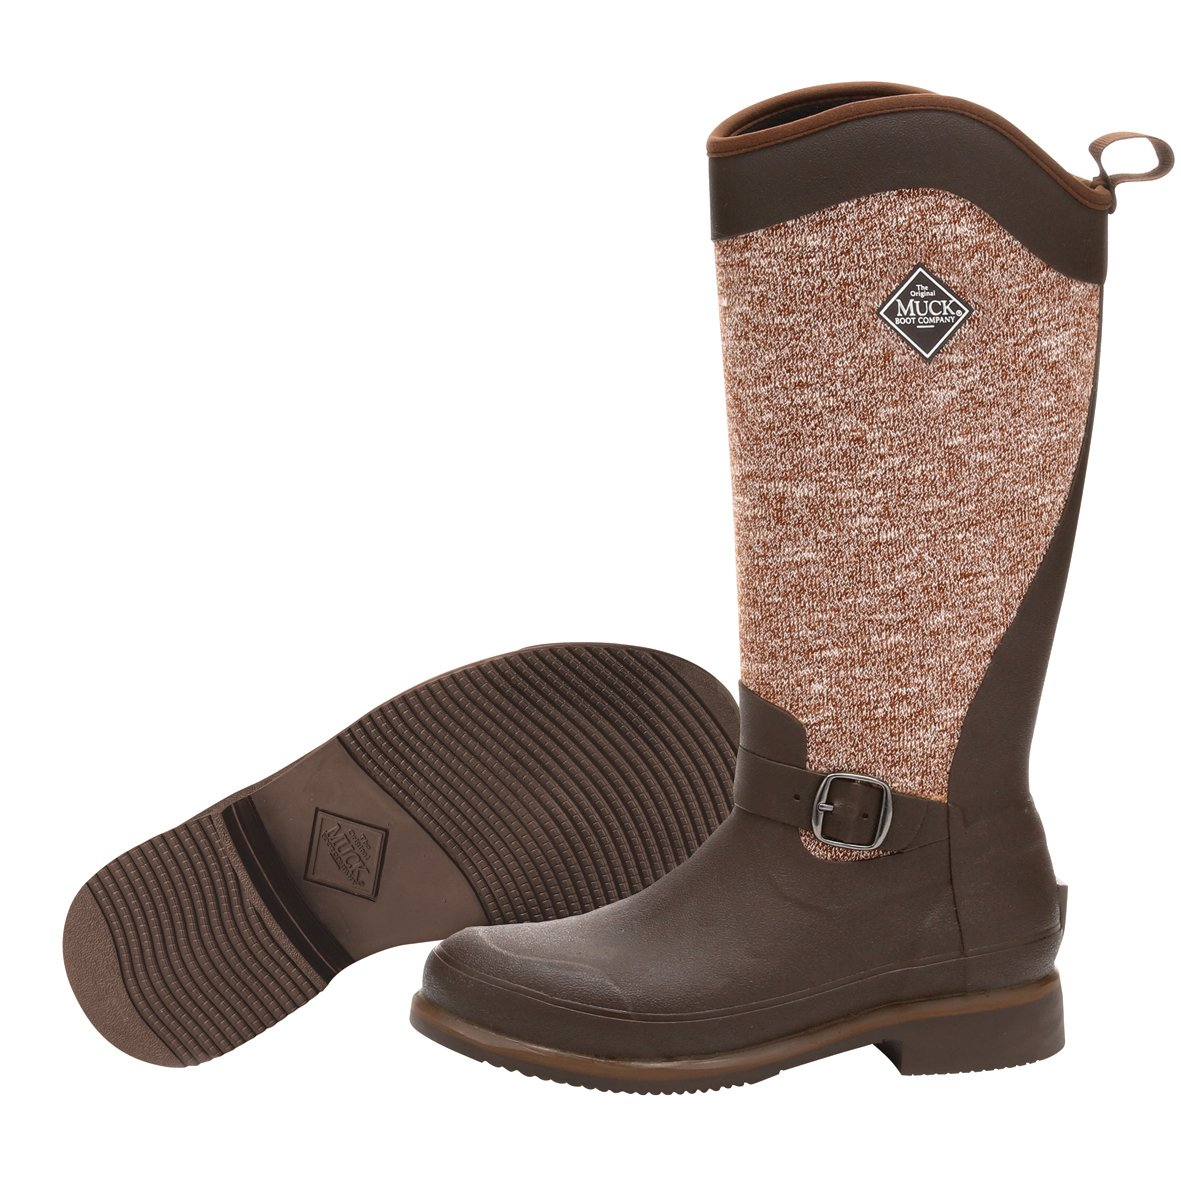 Muck Boot Women's Reign Supreme Snow Boot, Brown/Bison, 8 M US